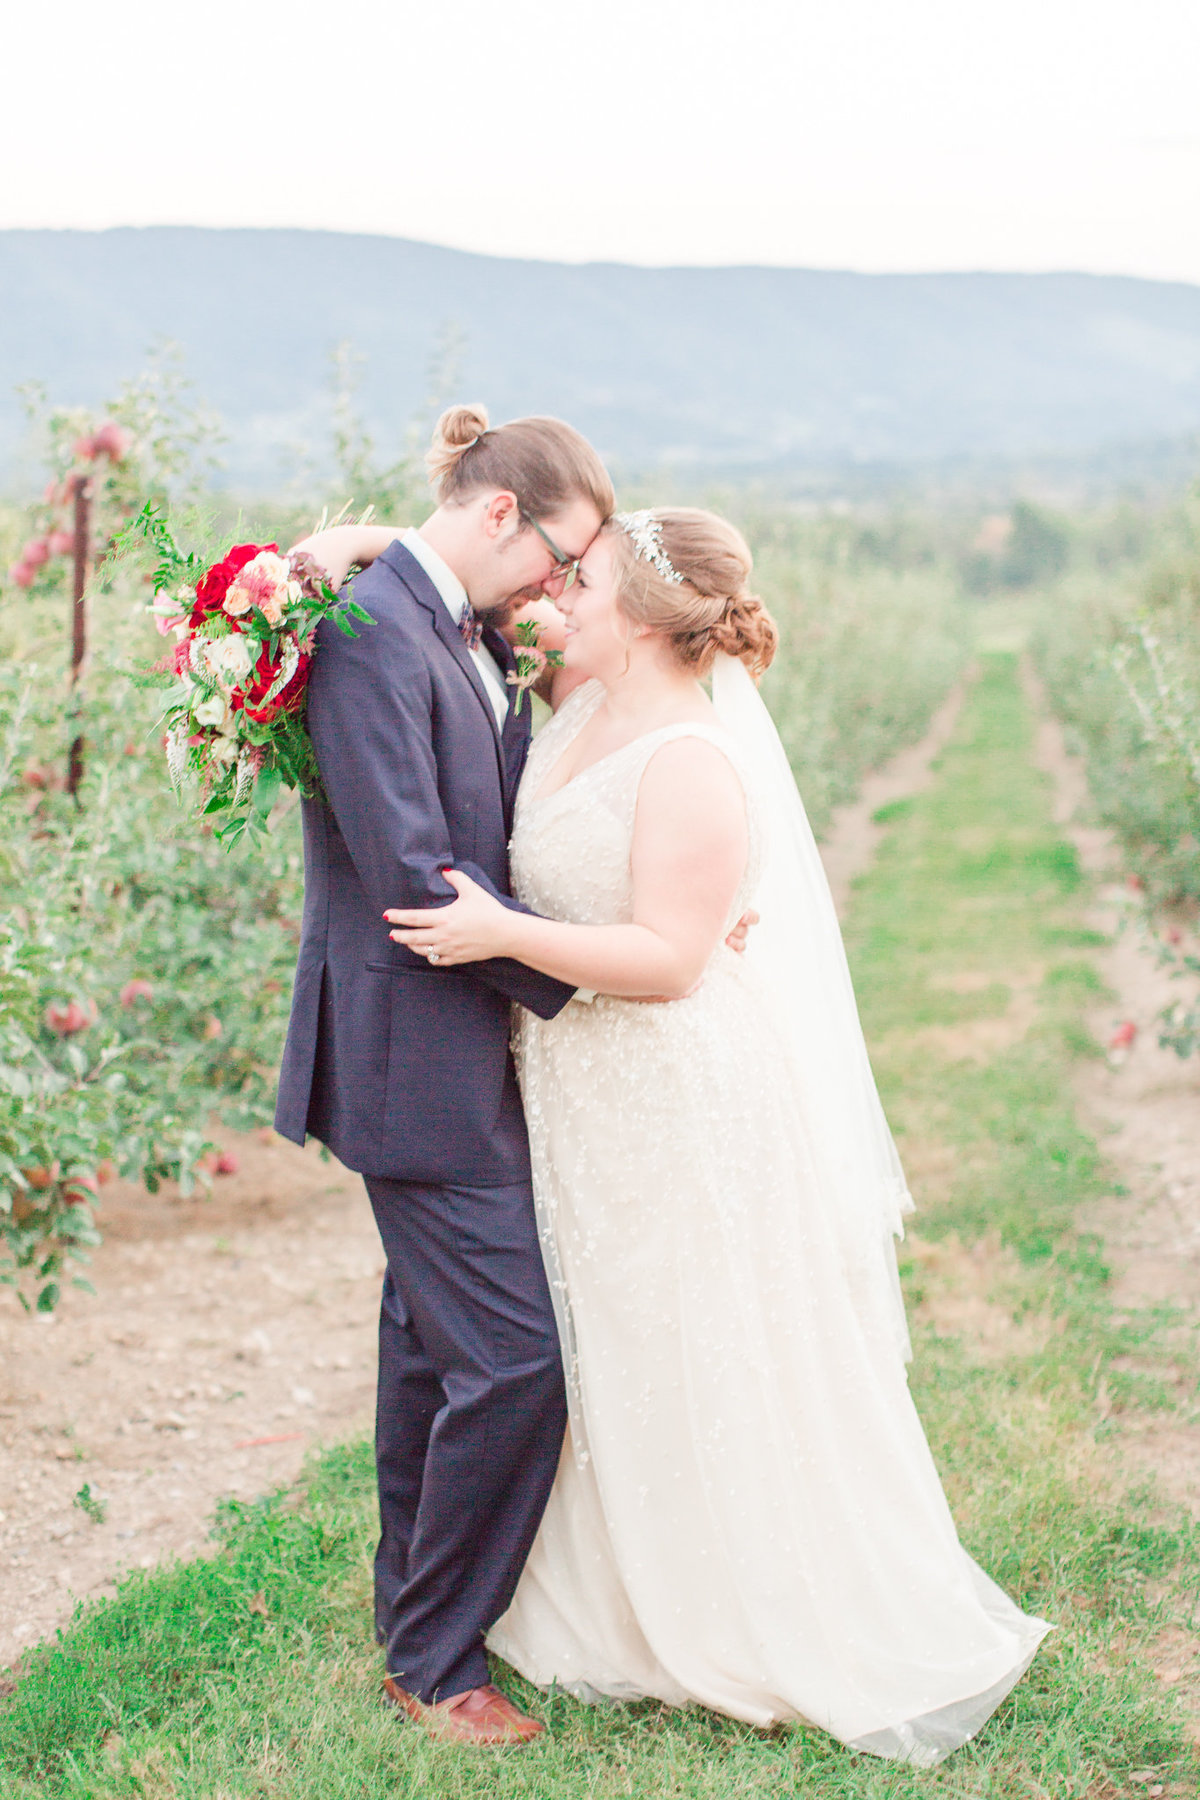 Bimi + Lucy Wedding at Doe Creek Farm